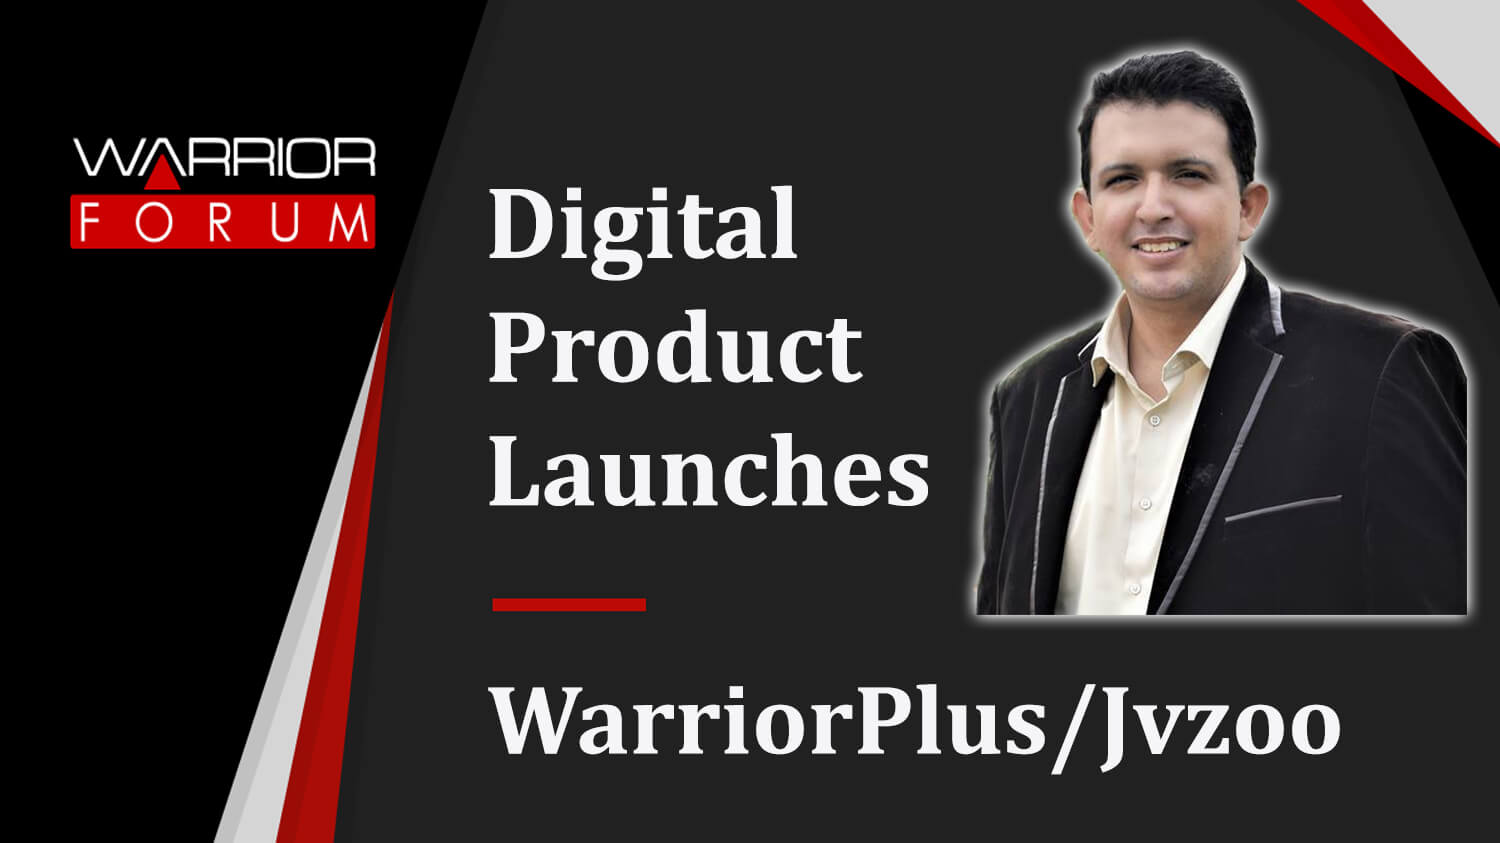 Digital Product Launches on WarriorPlus/Jvzoo